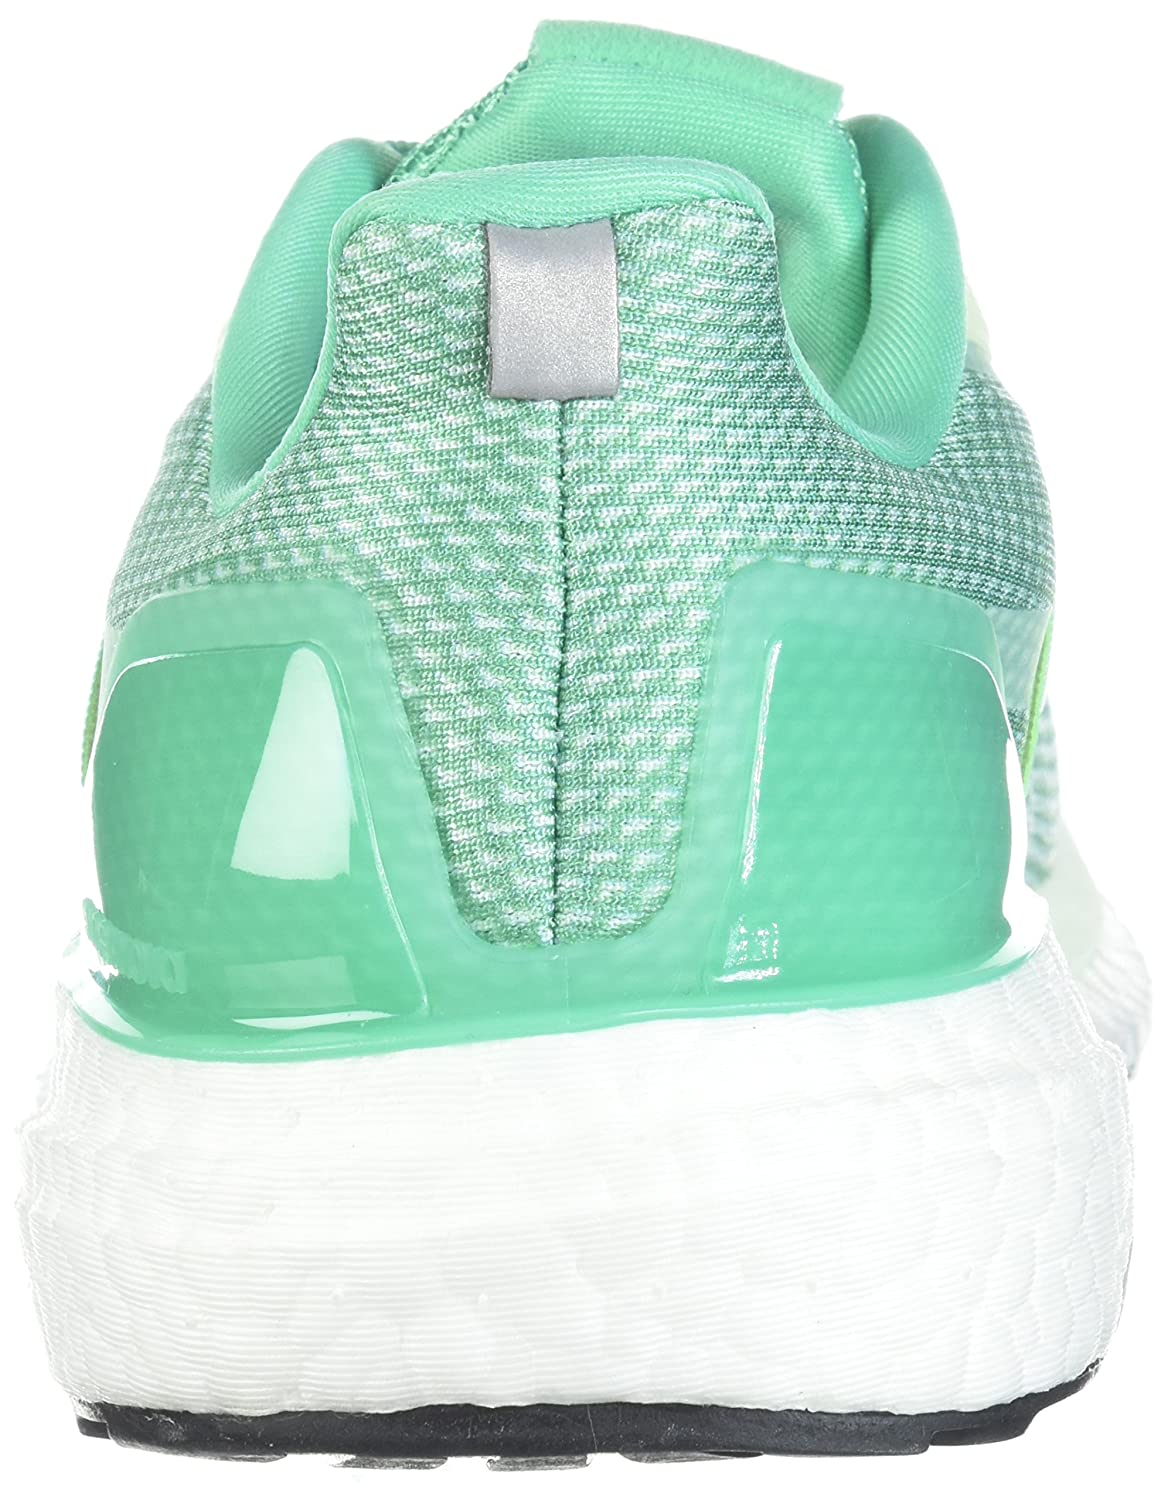 adidas Women's Supernova W Running US|Hi-res Shoe B0728B672V 8 B(M) US|Hi-res Running Green/Aero Green/Grey Three 37de4d